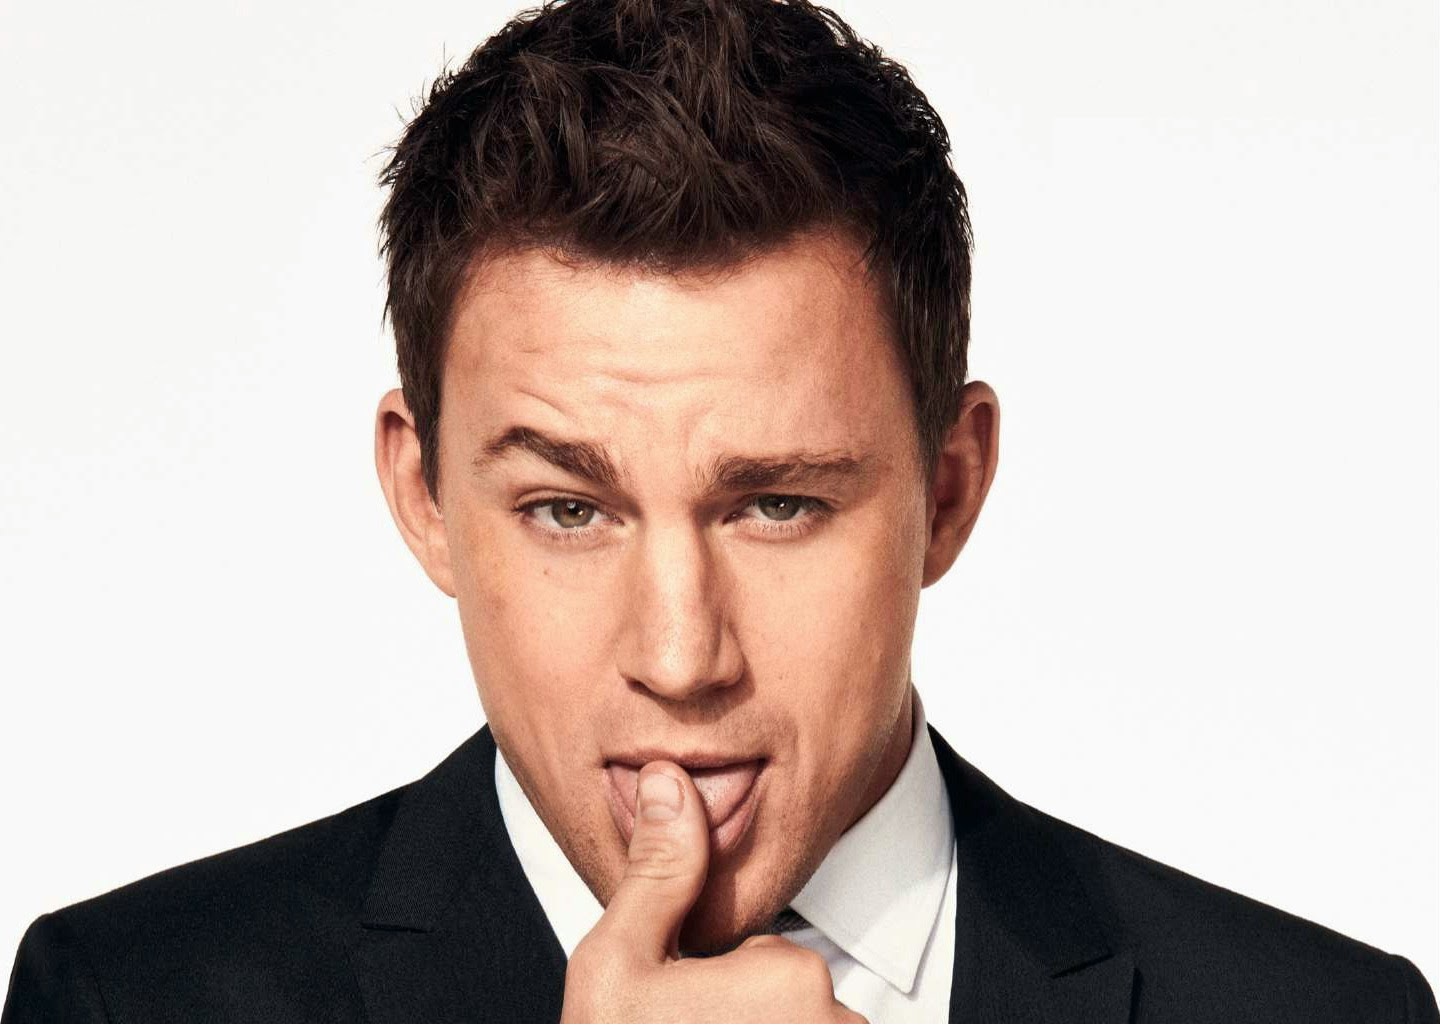 Hot Pictures of Channing Tatum